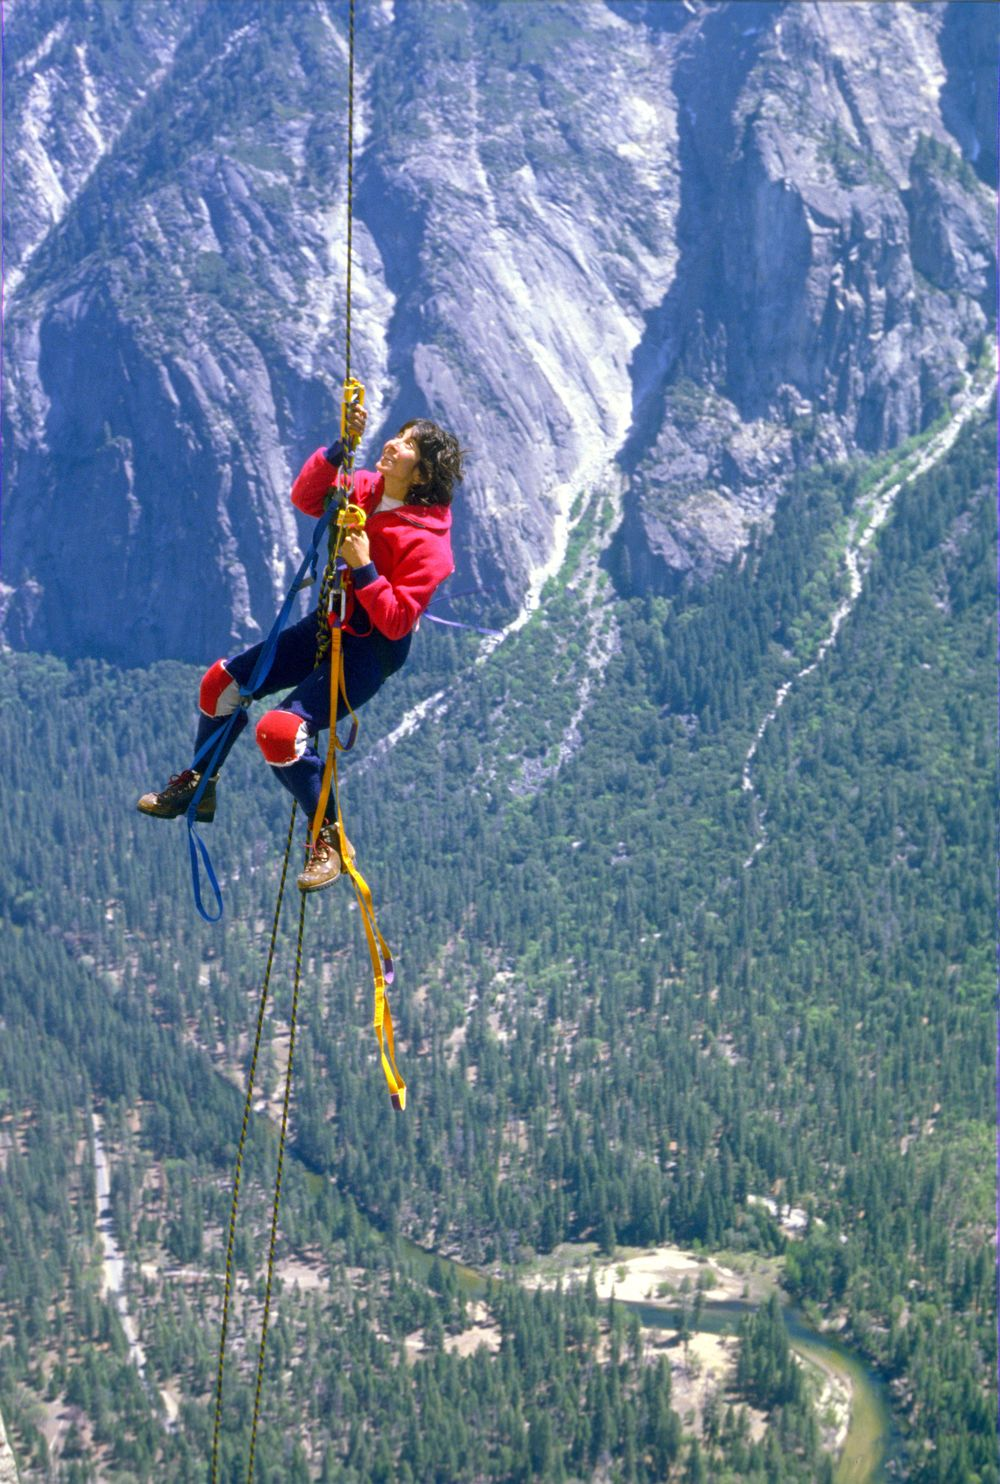 Karen jumars the last pitch of El Cap, late 1980s.